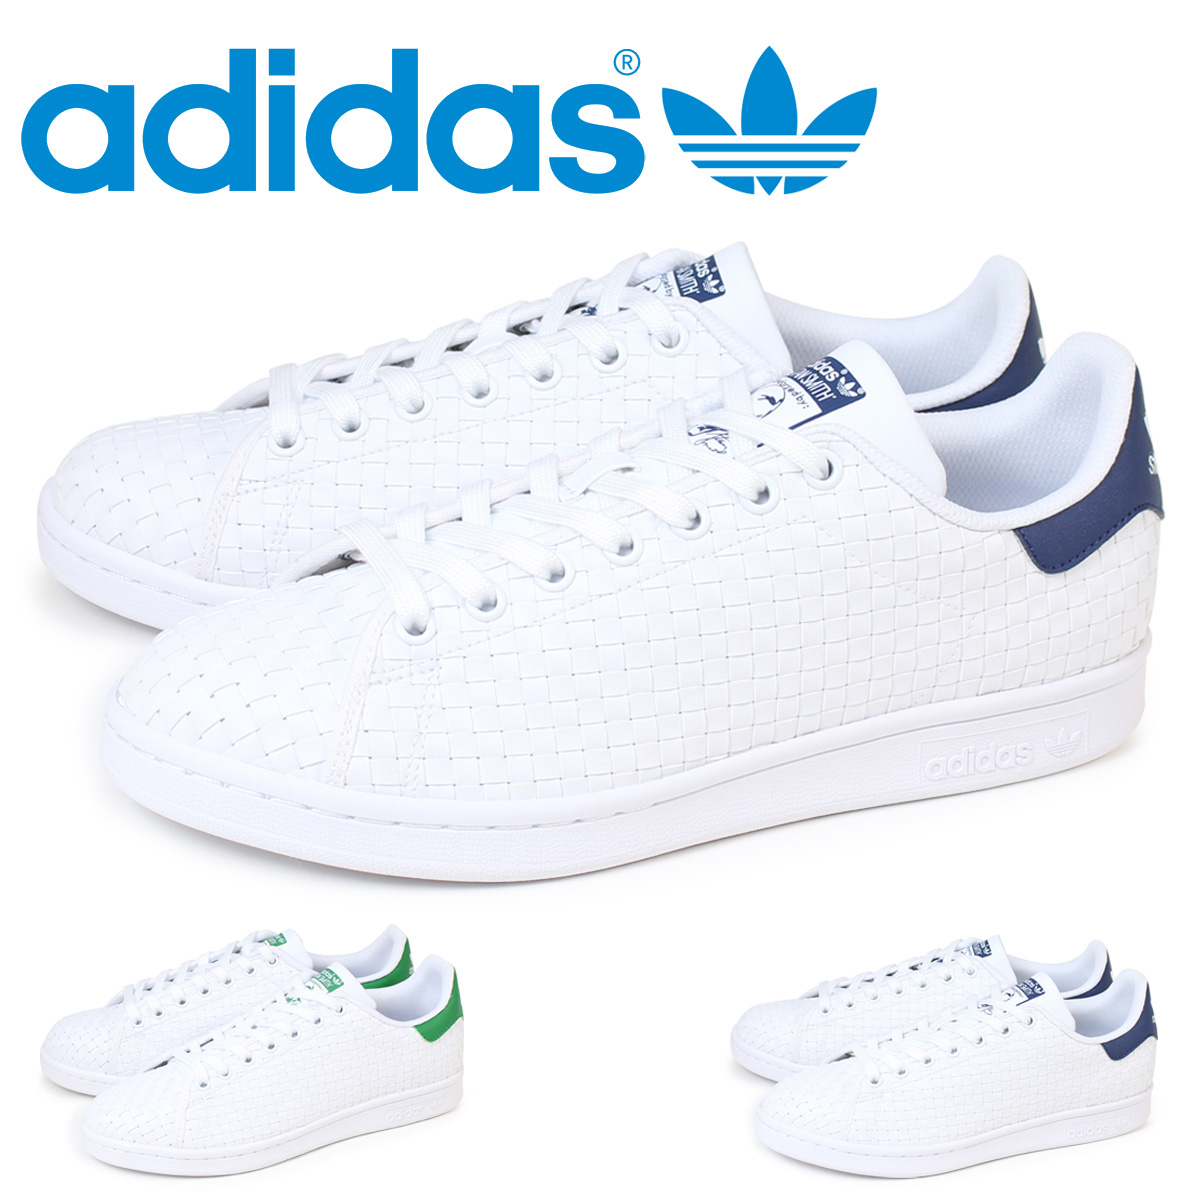 adidas Originals Stan Smith Adidas originals sneakers STAN SMITH men BB0051  BB1468 shoes white  171  3ac33aaf9